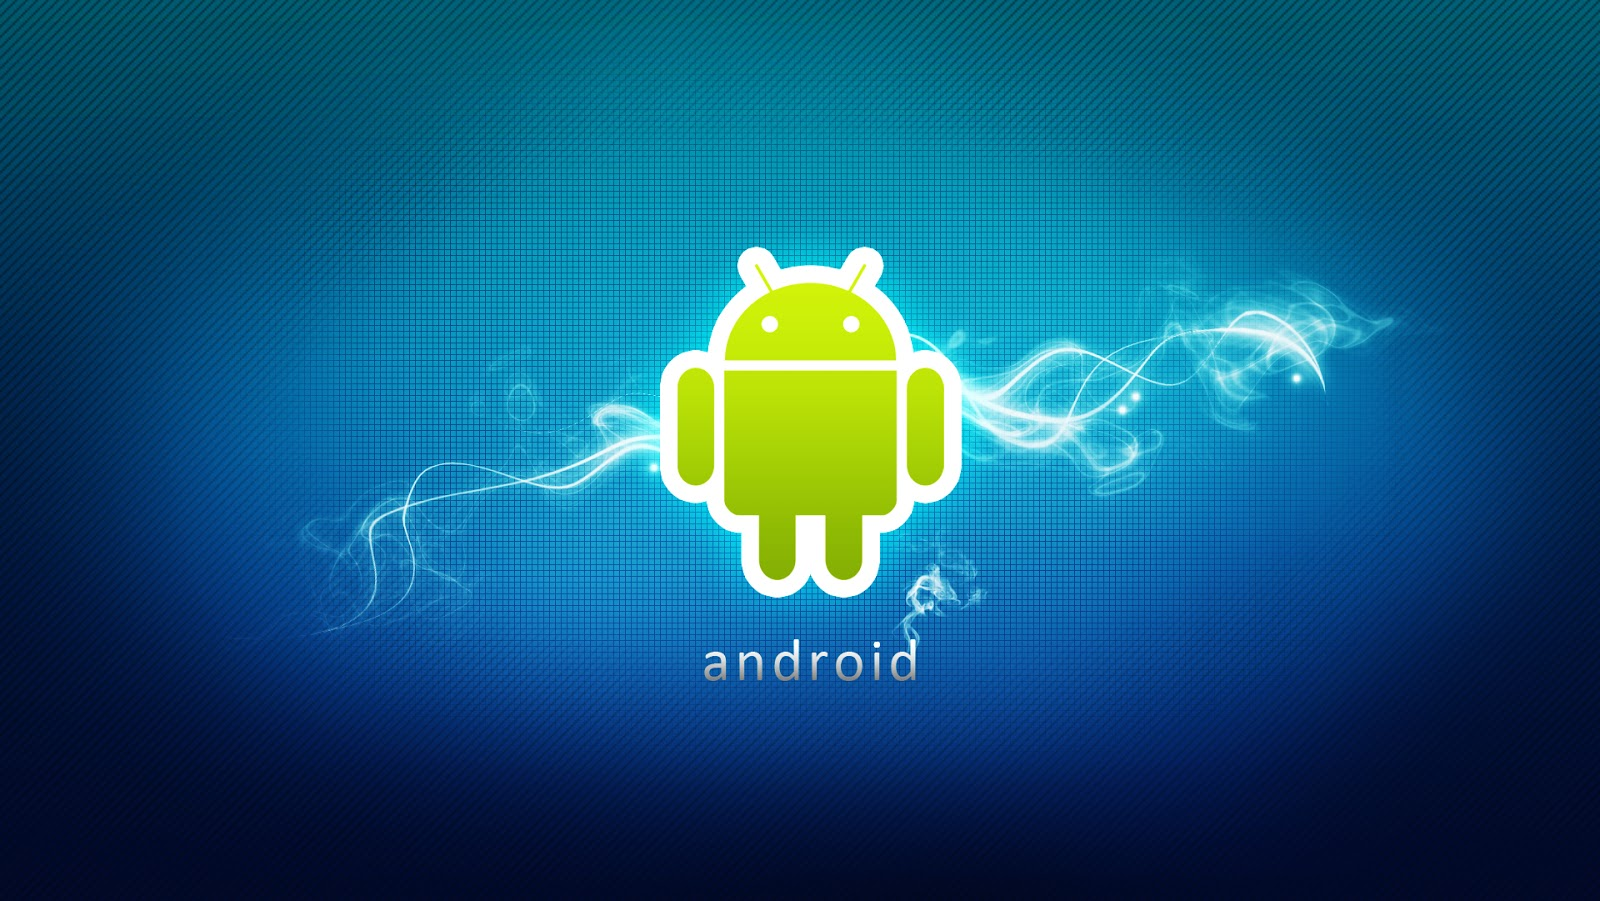 Wallpaper: Hd Wallpapers For Android